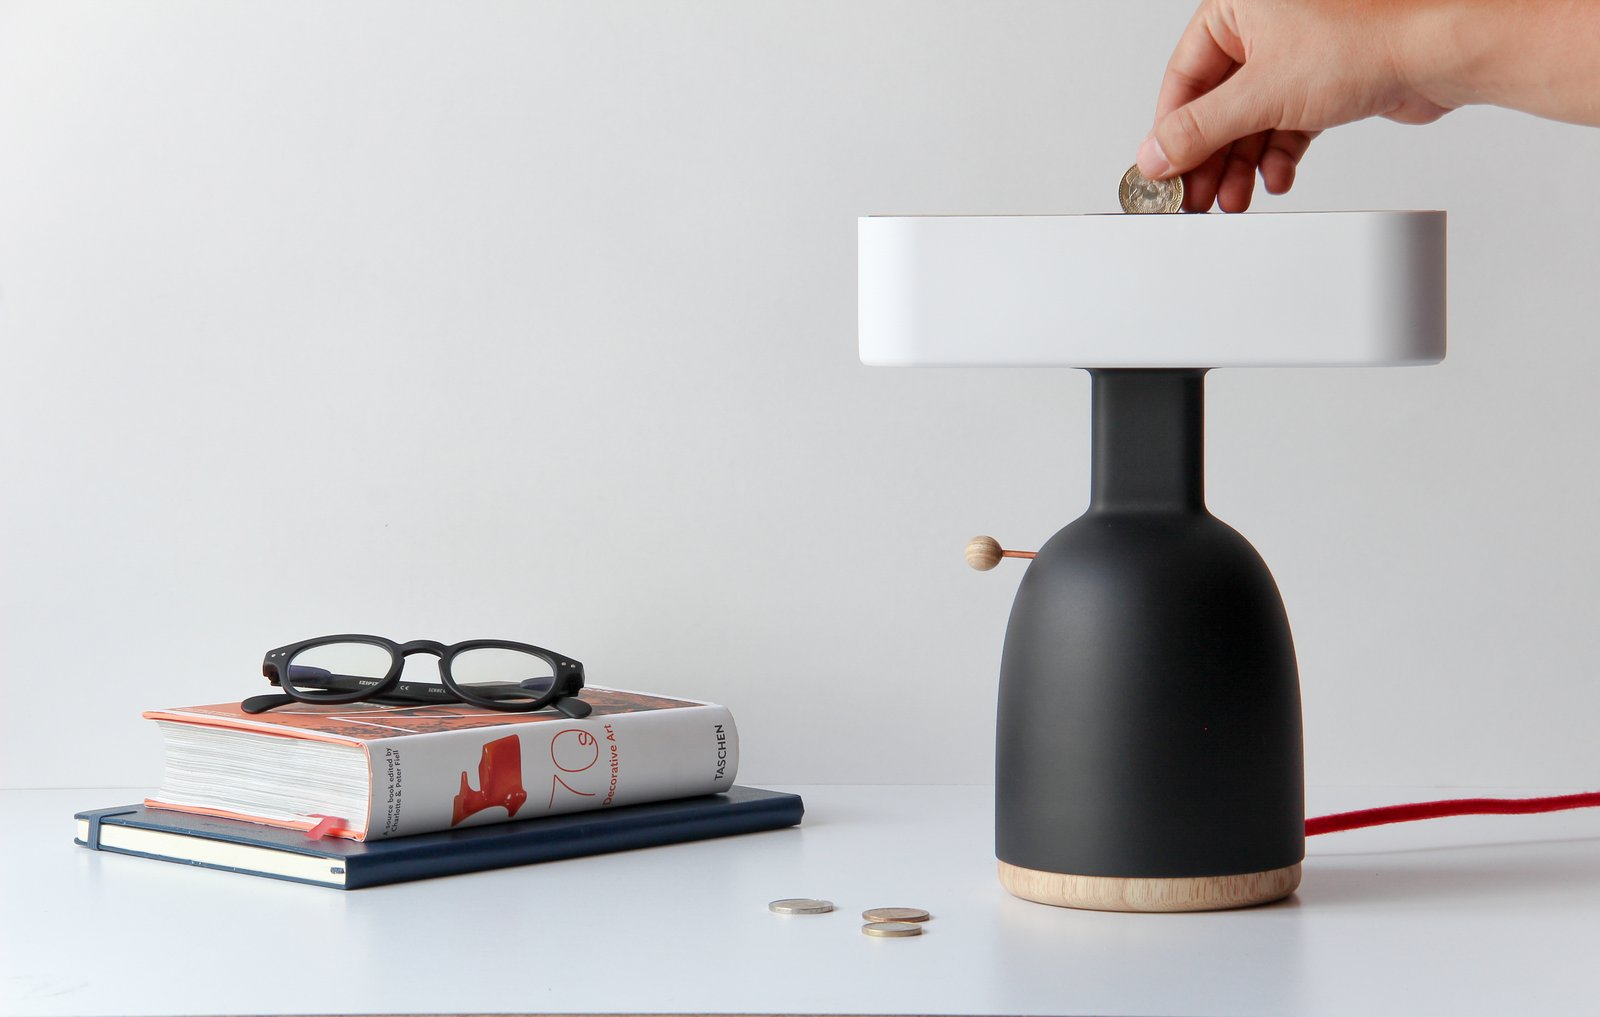 Currently, the Dina is just a prototype—the body and shade made with a 3D printer and the top and bottom lids made from natural ash wood. The interior features a mechanism that holds the coins and turns the light on by closing the electrical circuit.